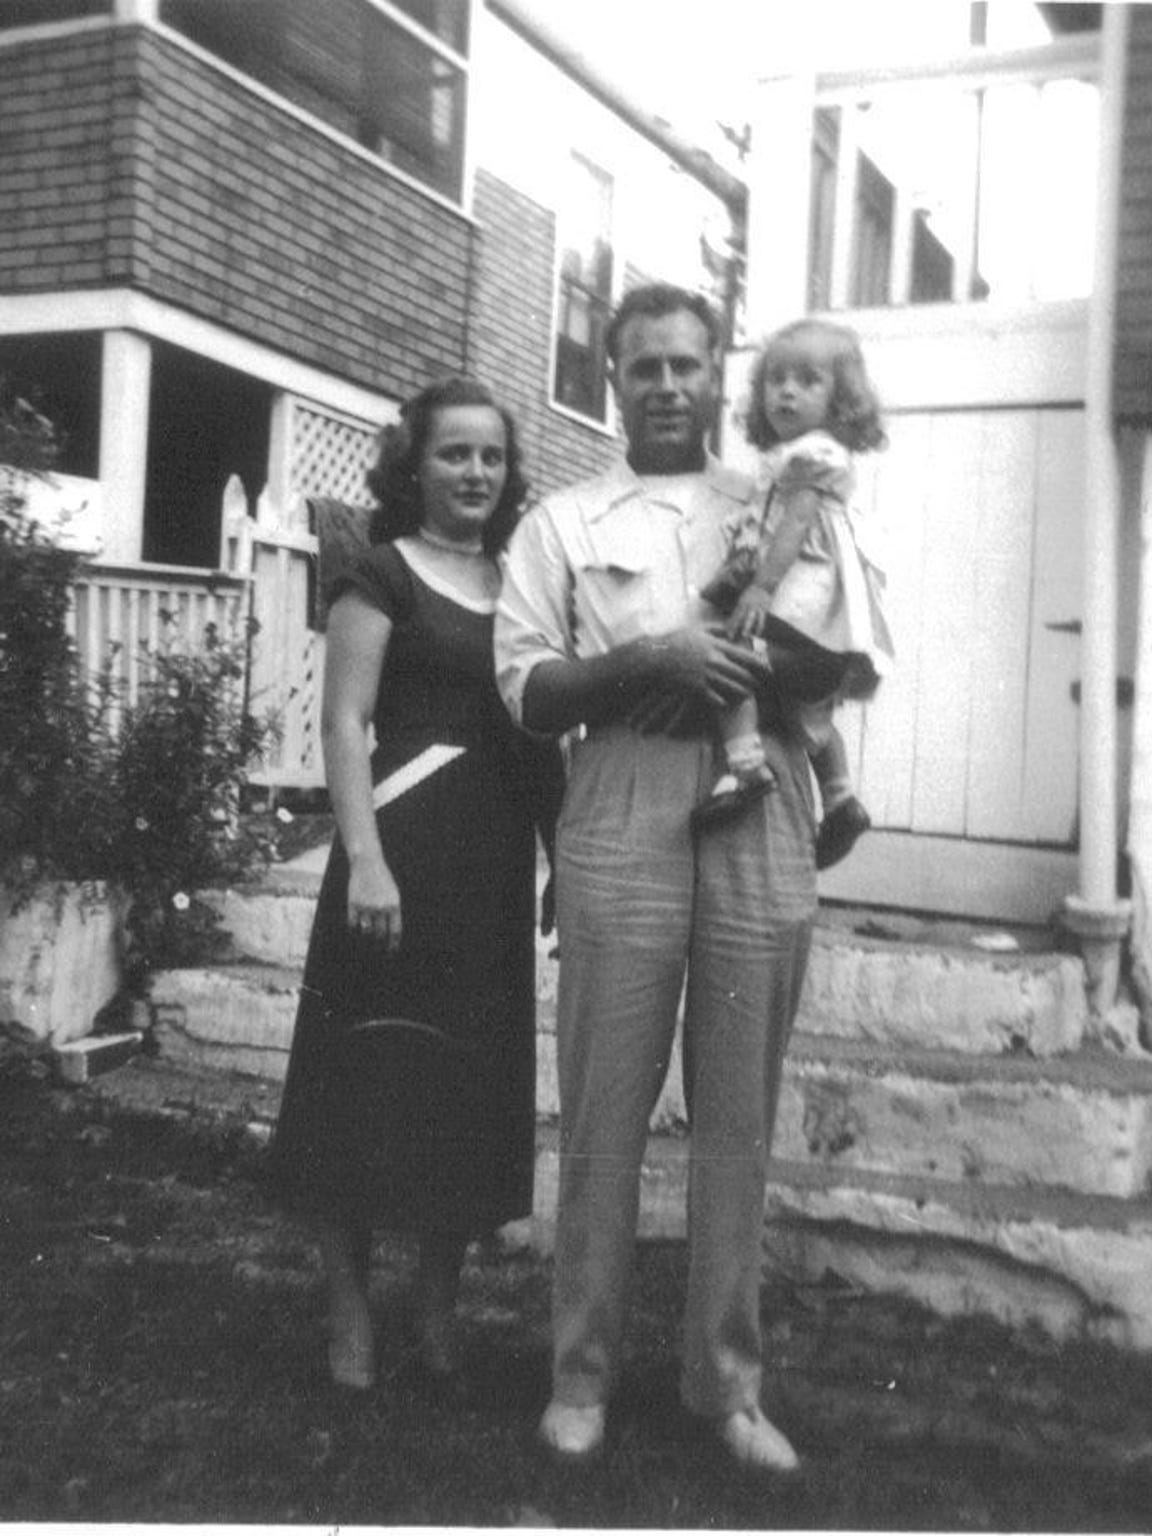 Helen Harney with her husband, Bob and their daughter, Linda, around 1953